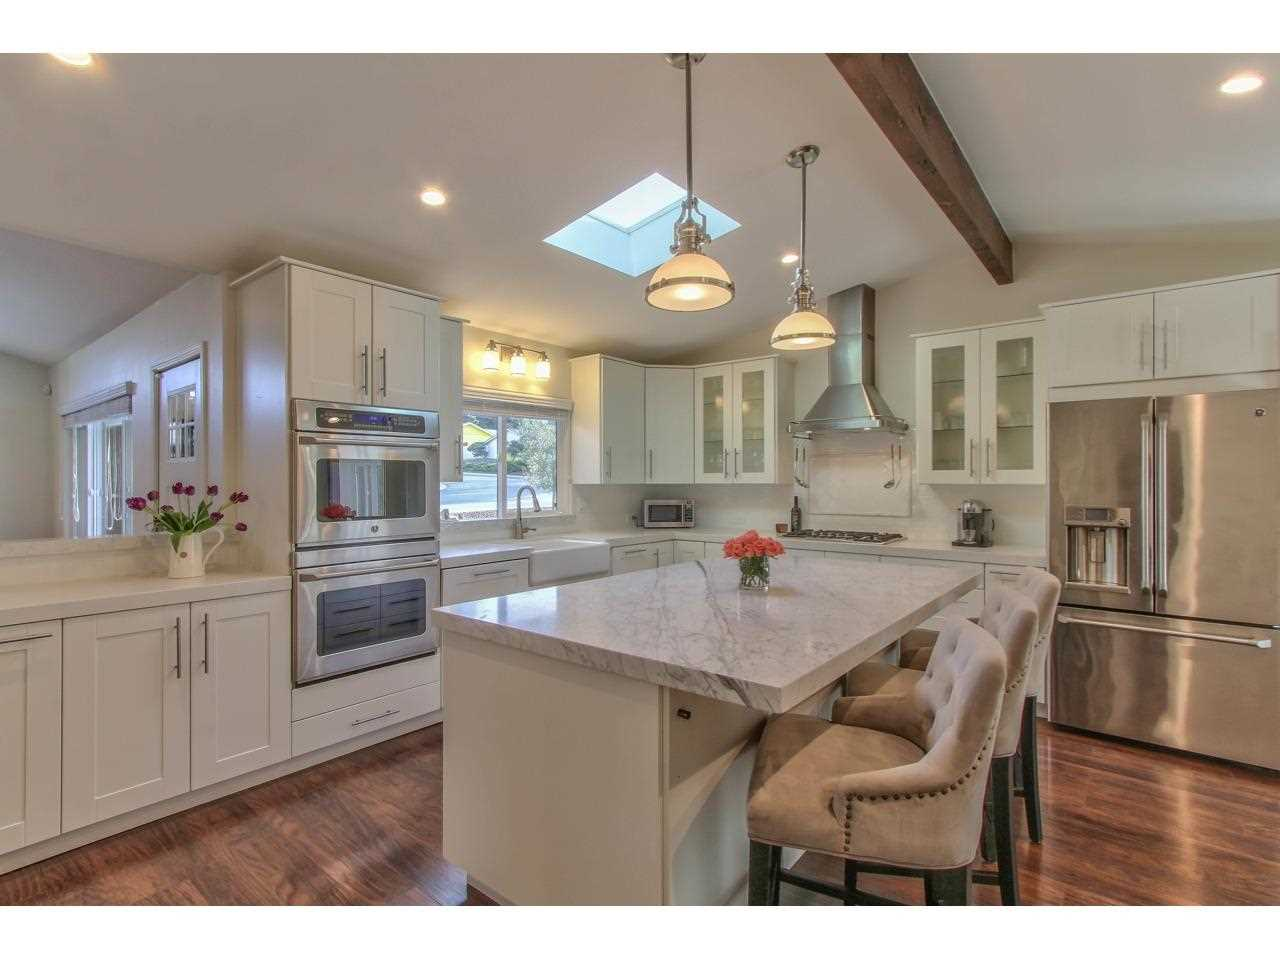 2101 Messina Pl,MONTEREY,CA,homes for sale in MONTEREY Photo 1